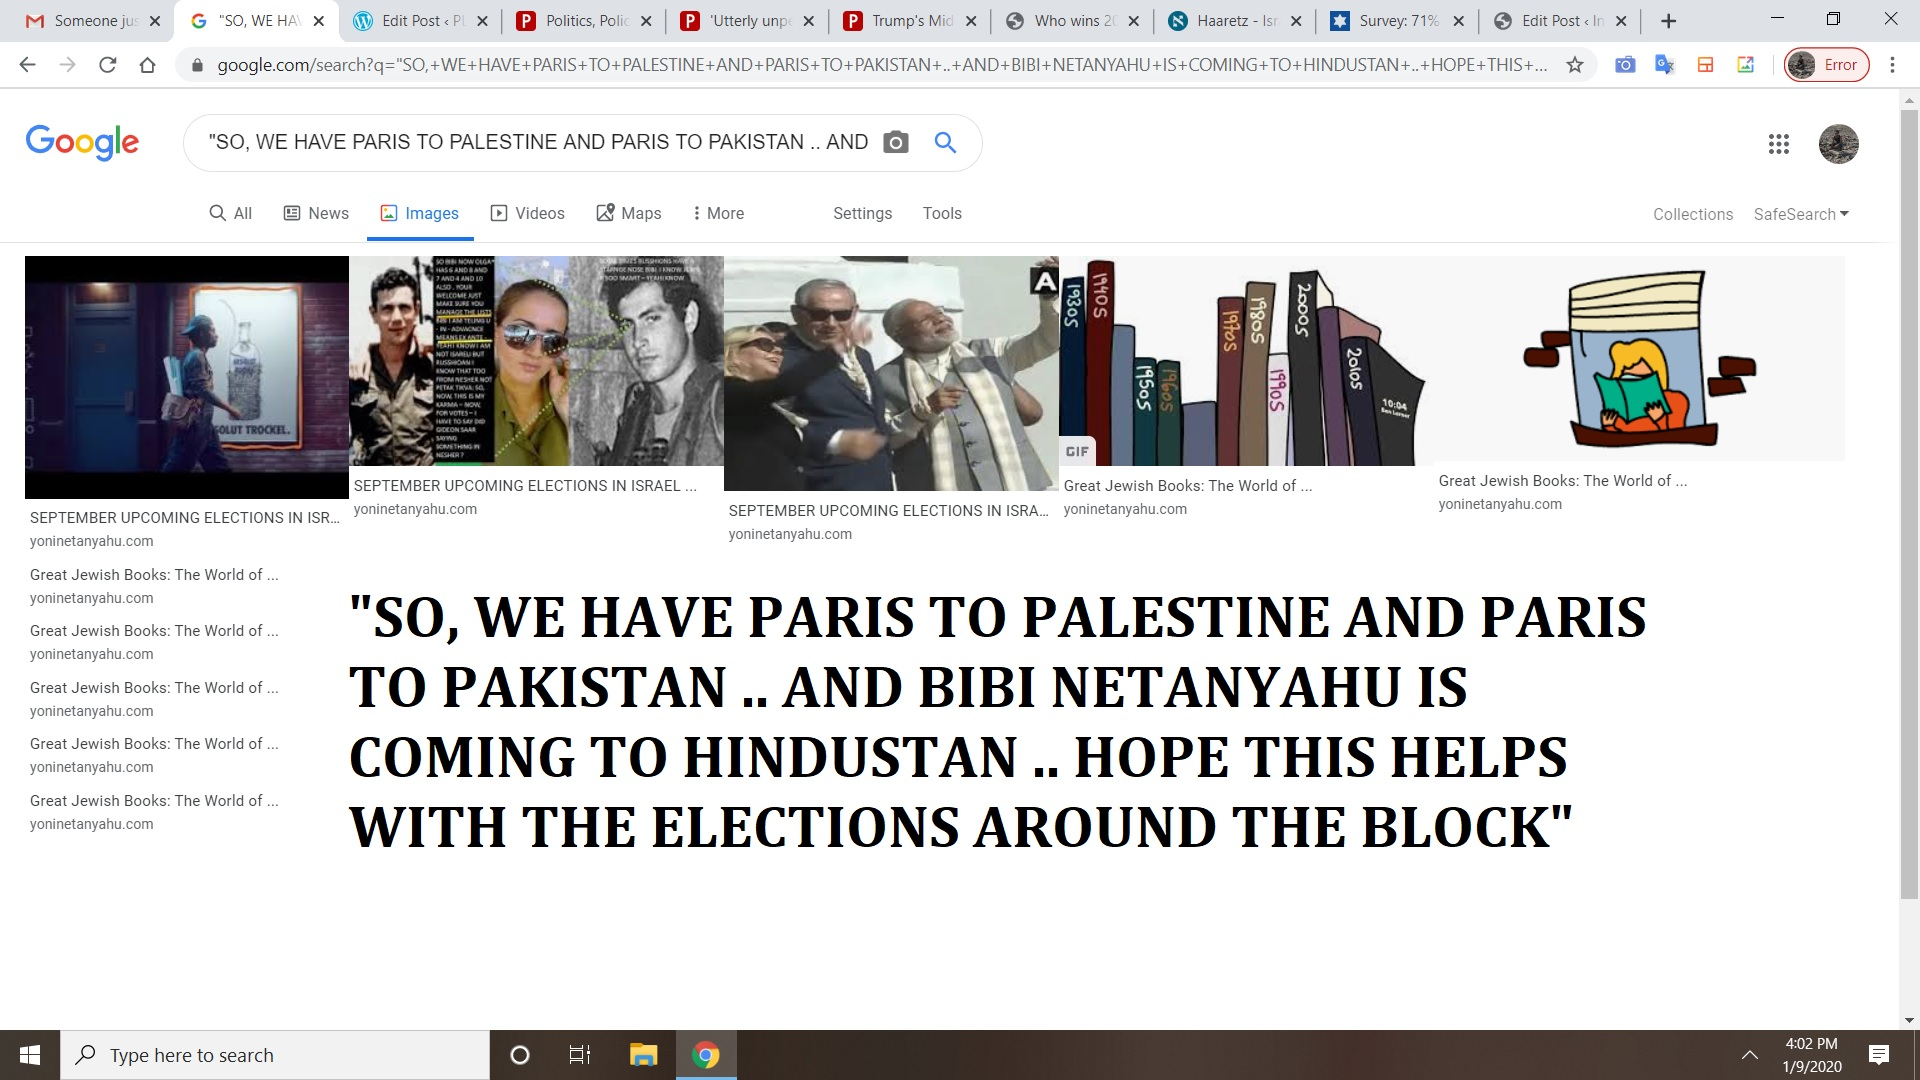 SO, WE HAVE PARIS TO PALESTINE AND PARIS TO PAKISTAN .. AND BIBI NETANYAHU IS COMING TO HINDUSTAN .. HOPE THIS HELPS WITH THE ELECTIONS AROUND THE BLOCK